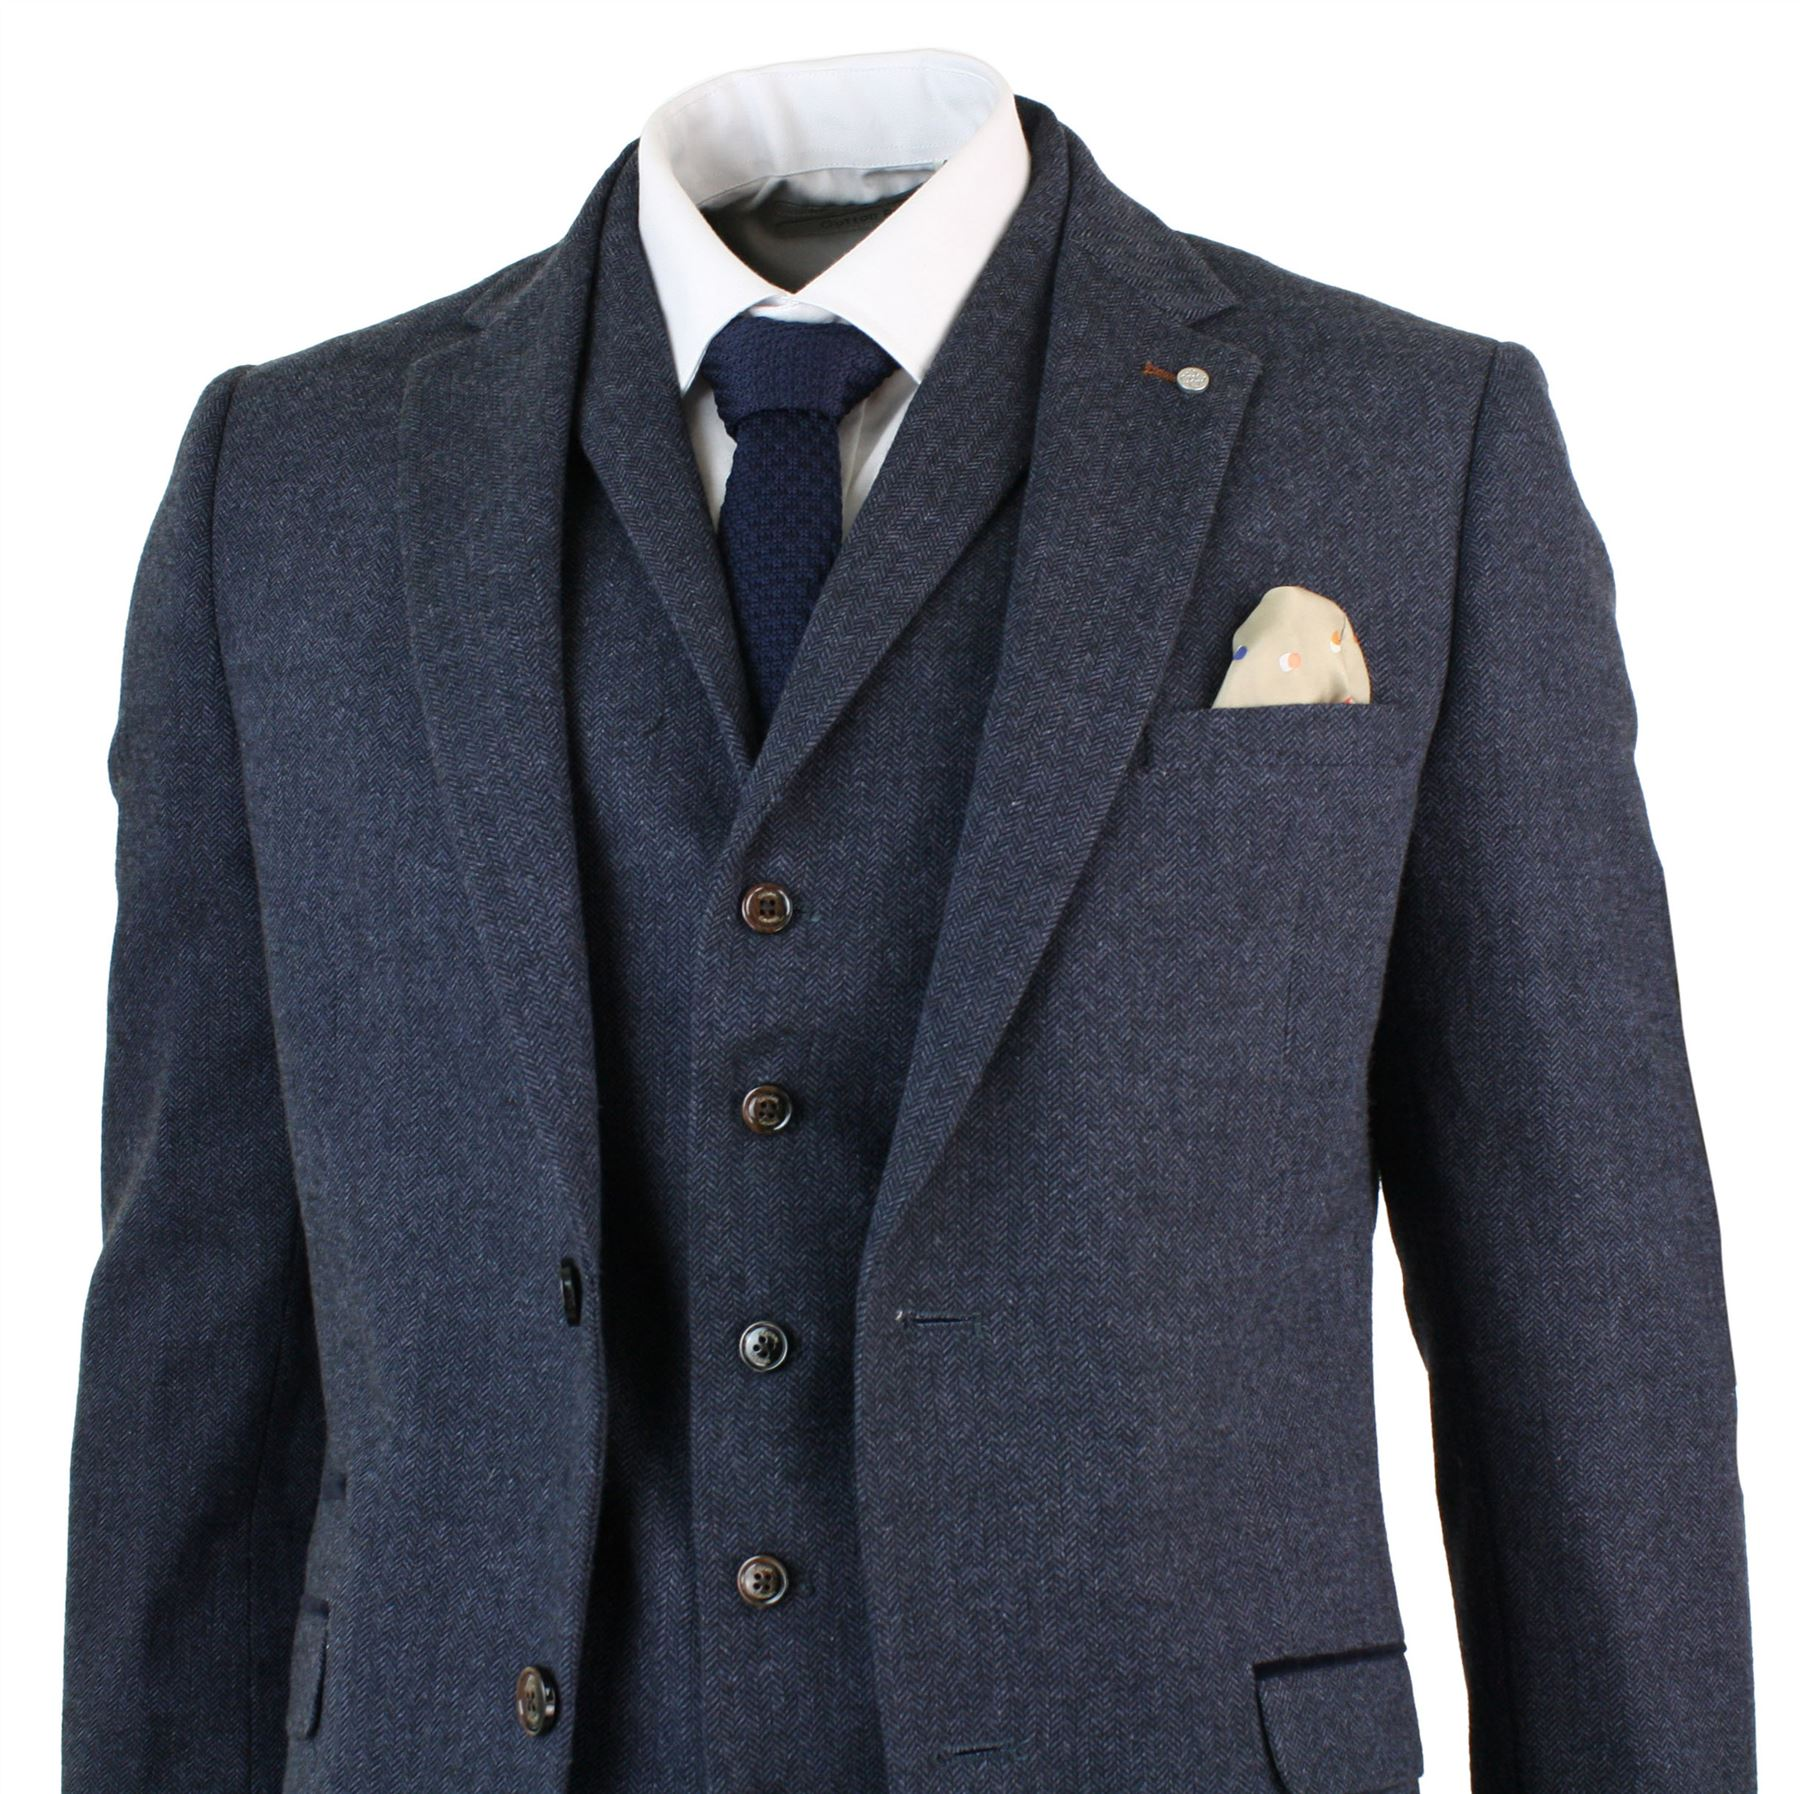 Find great deals on eBay for 3 piece wool suit. Shop with confidence.